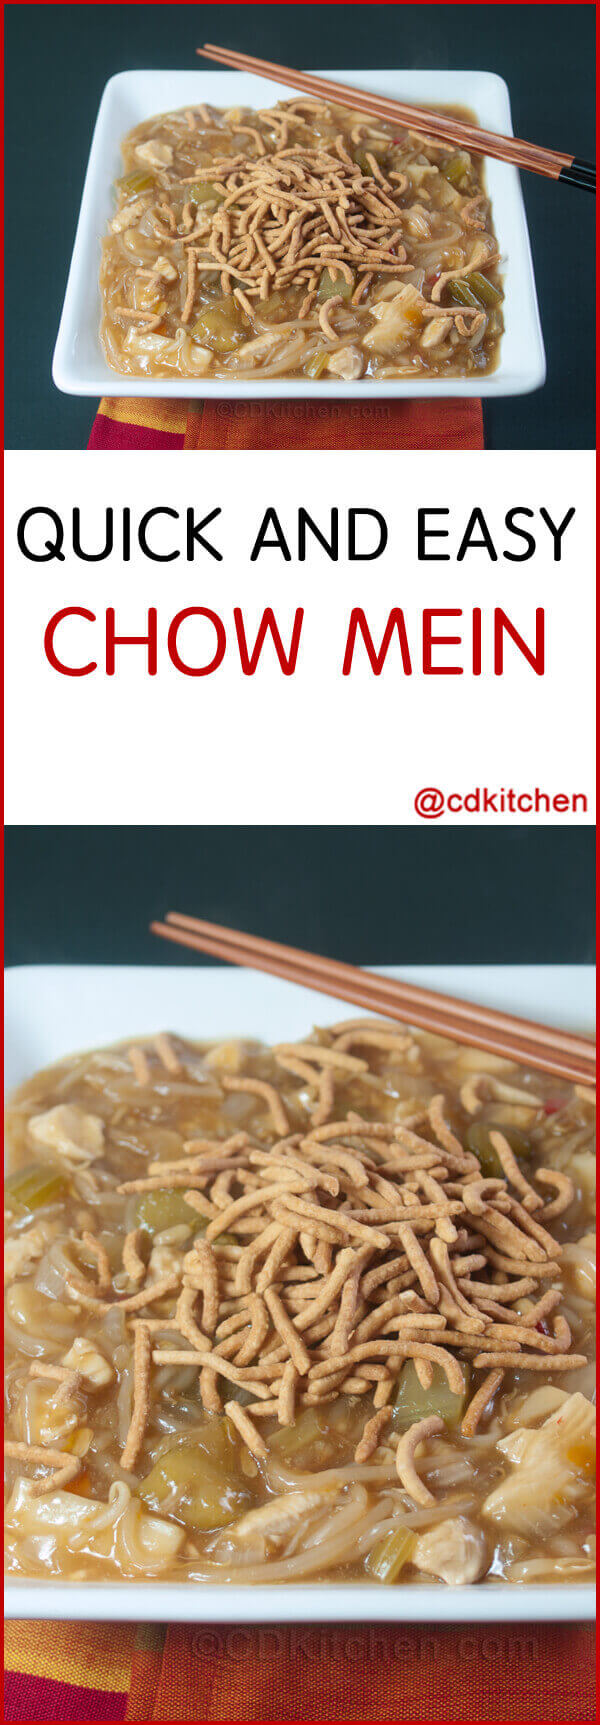 Quick And Easy Chow Mein Recipe Cdkitchen Com